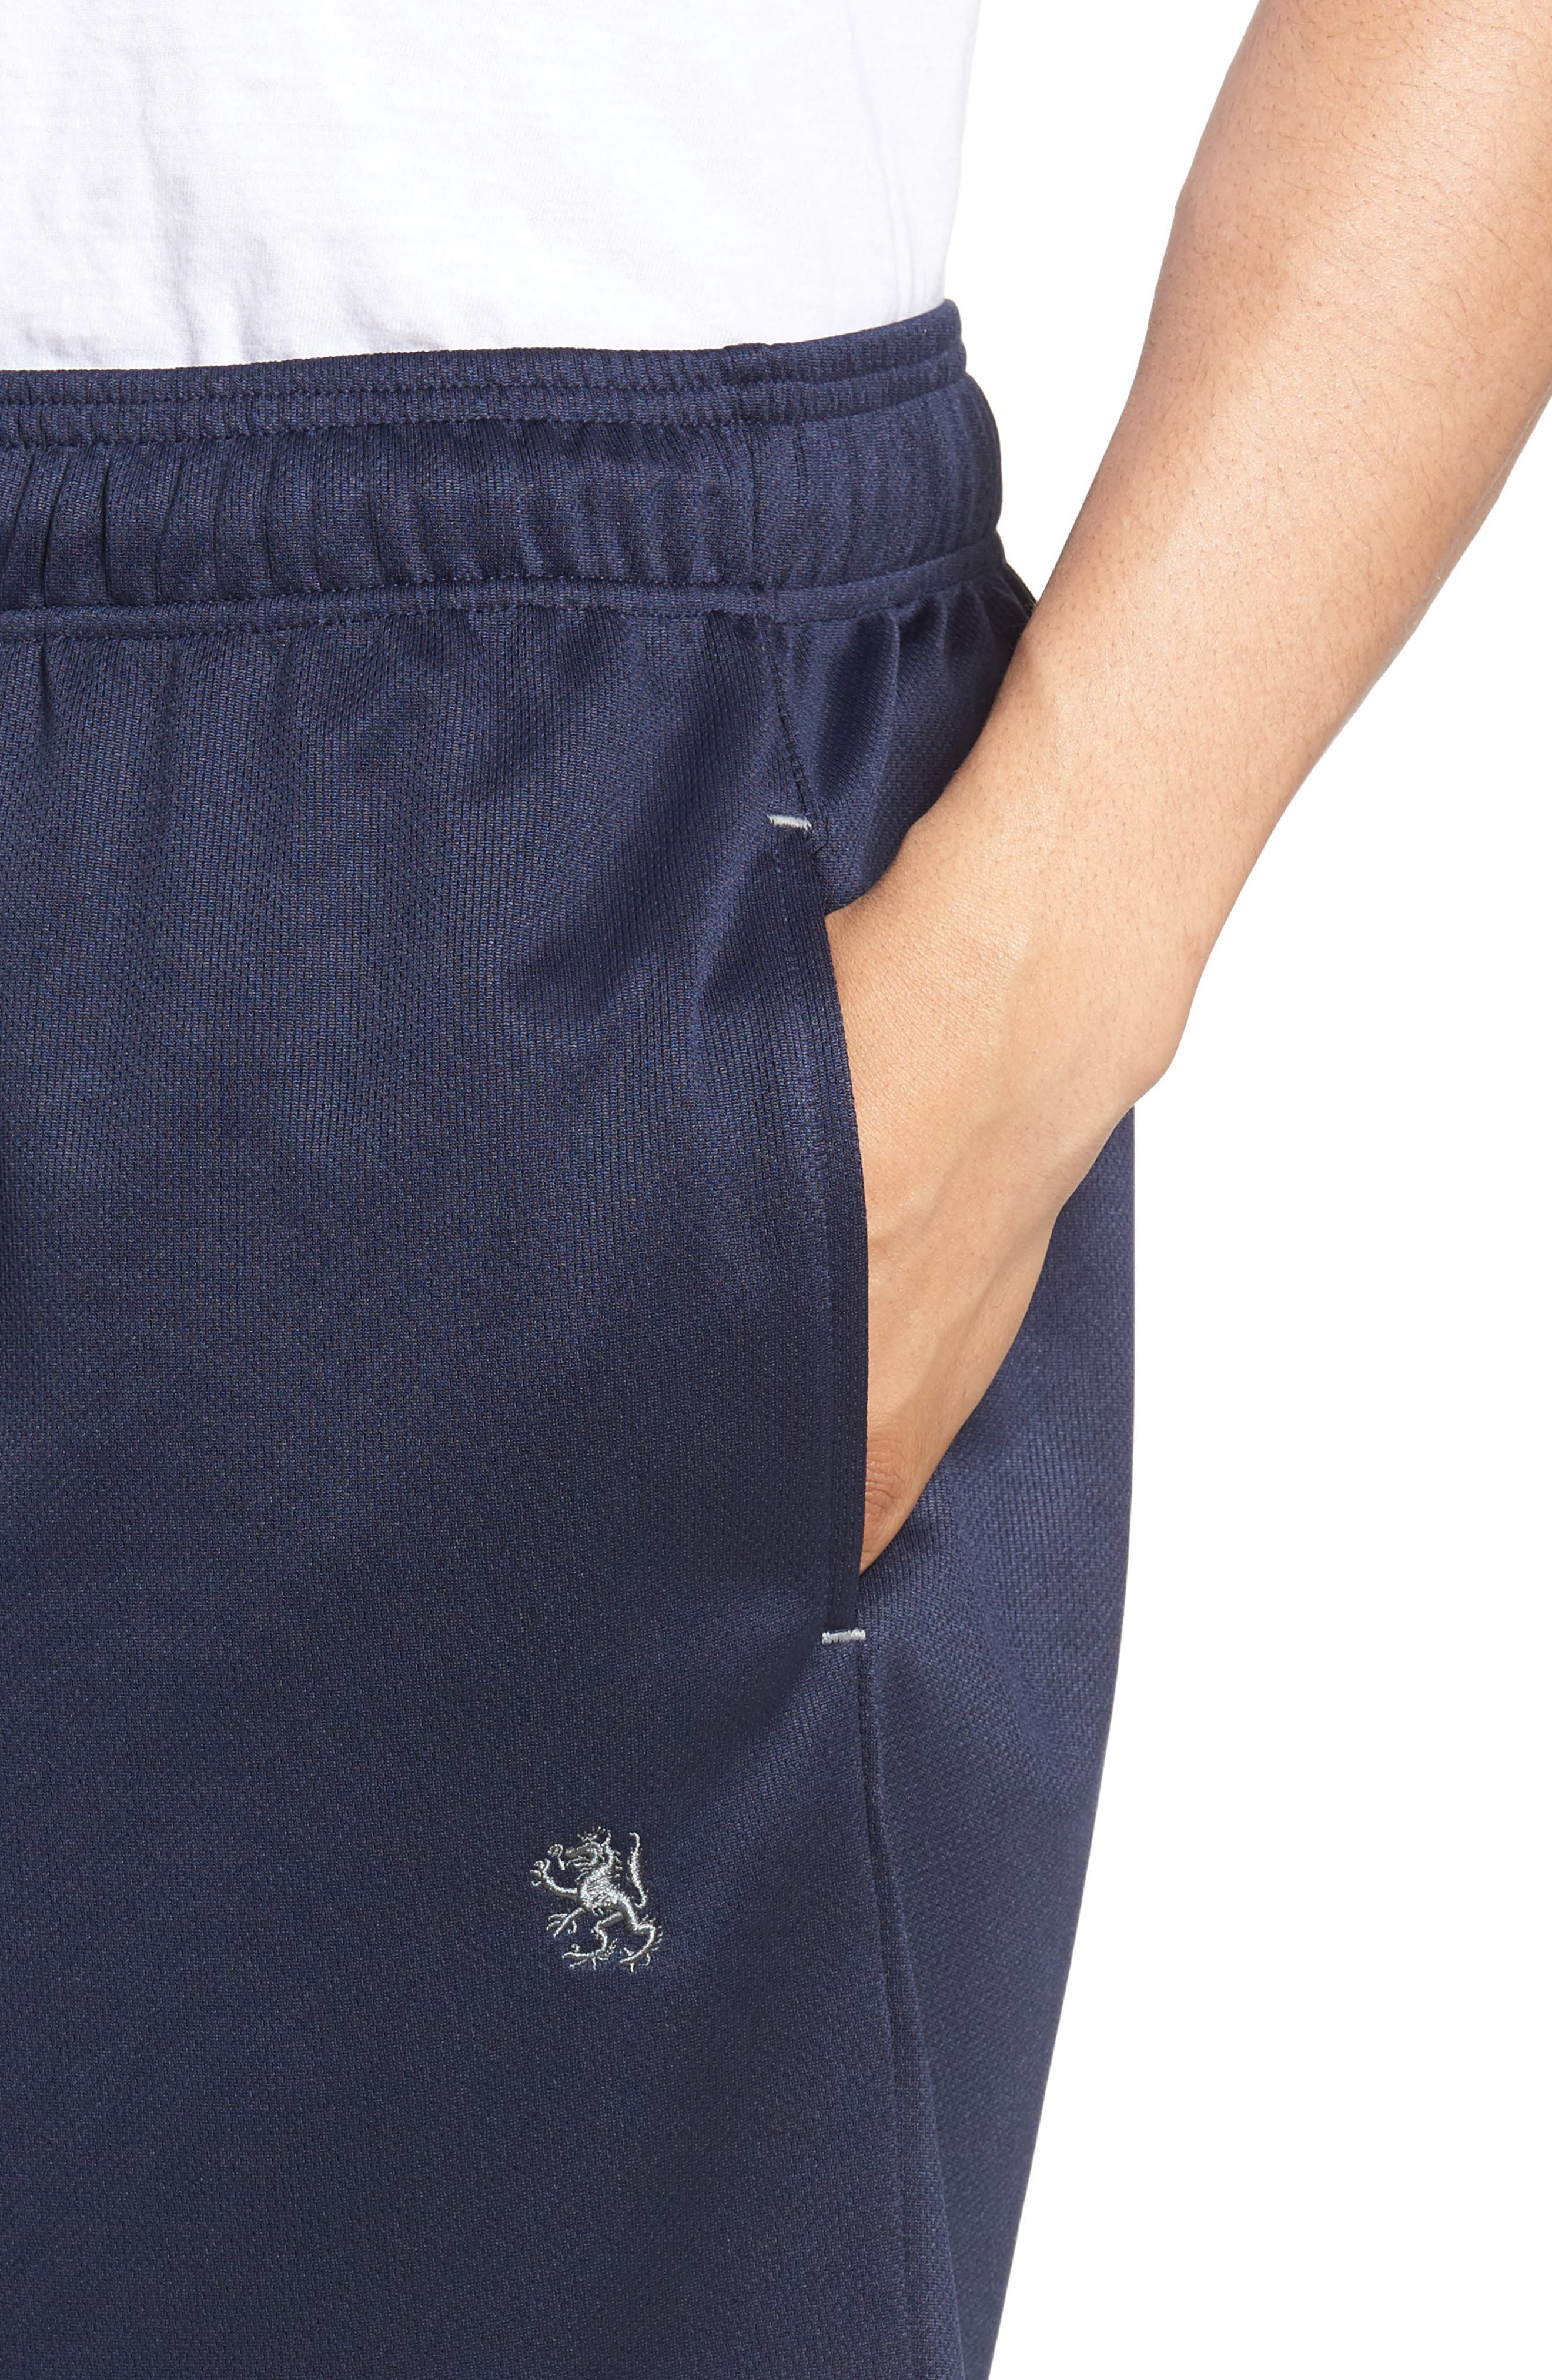 Work Out Lounge Shorts,                             Alternate thumbnail 4, color,                             Navy